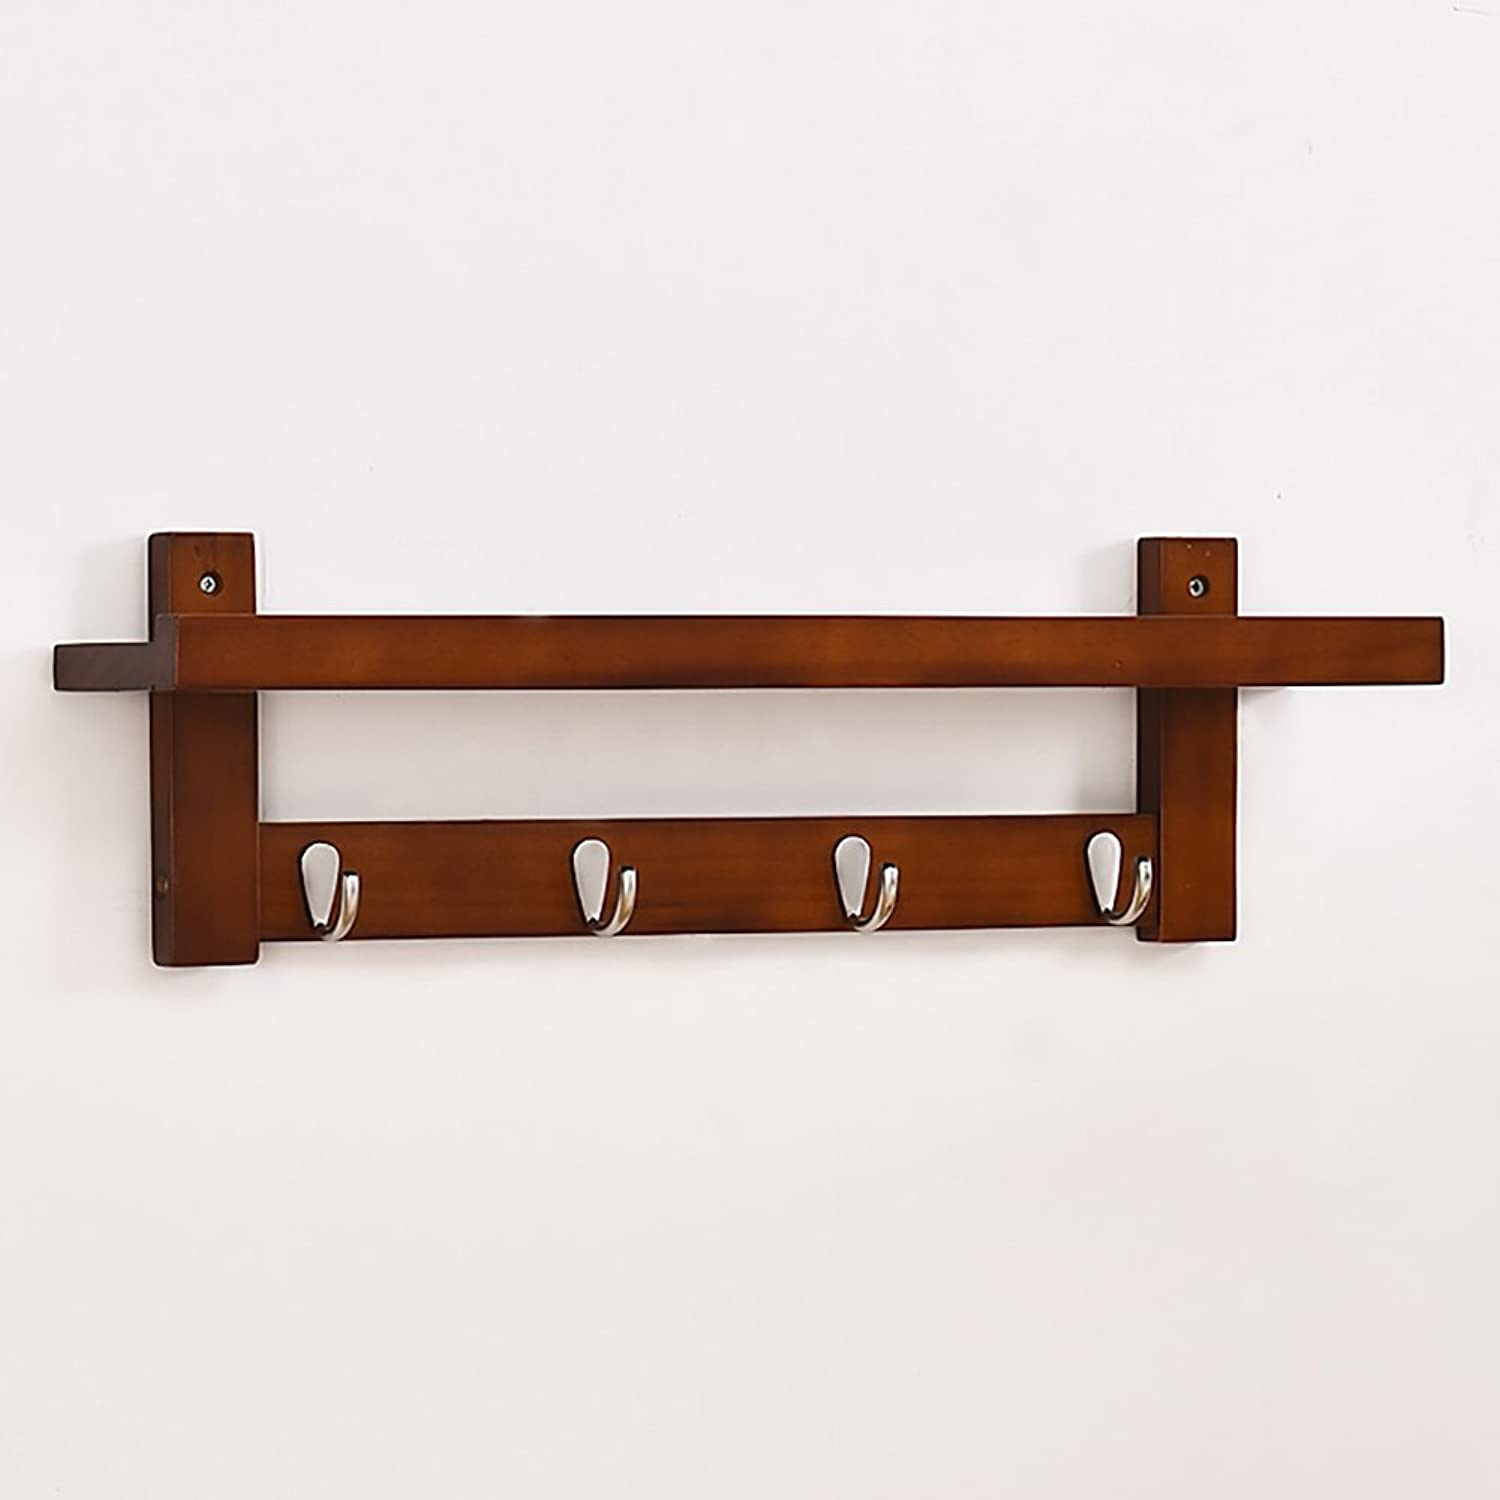 LFF- Simple Wall-Mounted Coat Rack Bedroom Wooden Hangers Creative Piano Wall Hanging Multifunctional Living Room Wall Hanger (color   orange, Size   A)